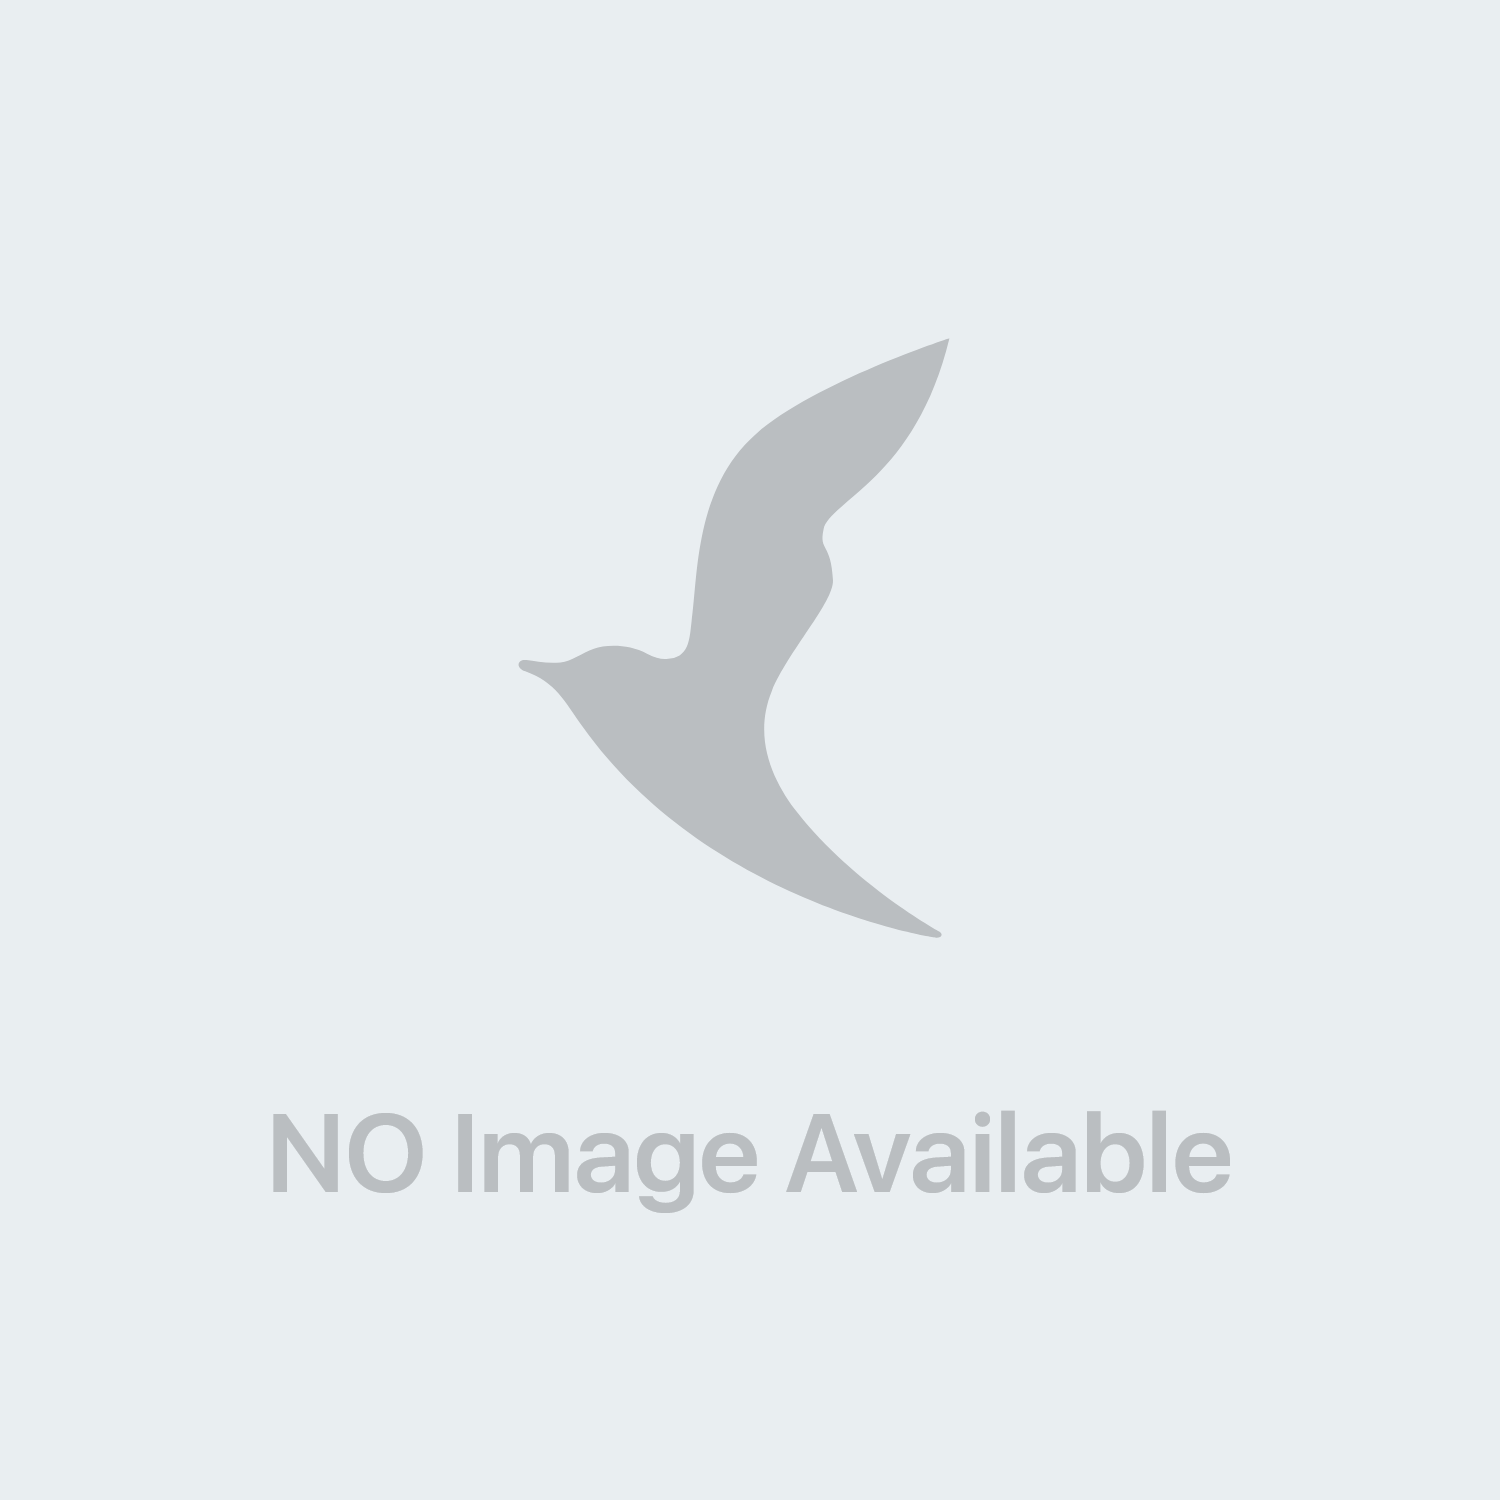 Nuxe Aroma-Perfection Trattamento Anti-imperfezioni Viso 40 ml